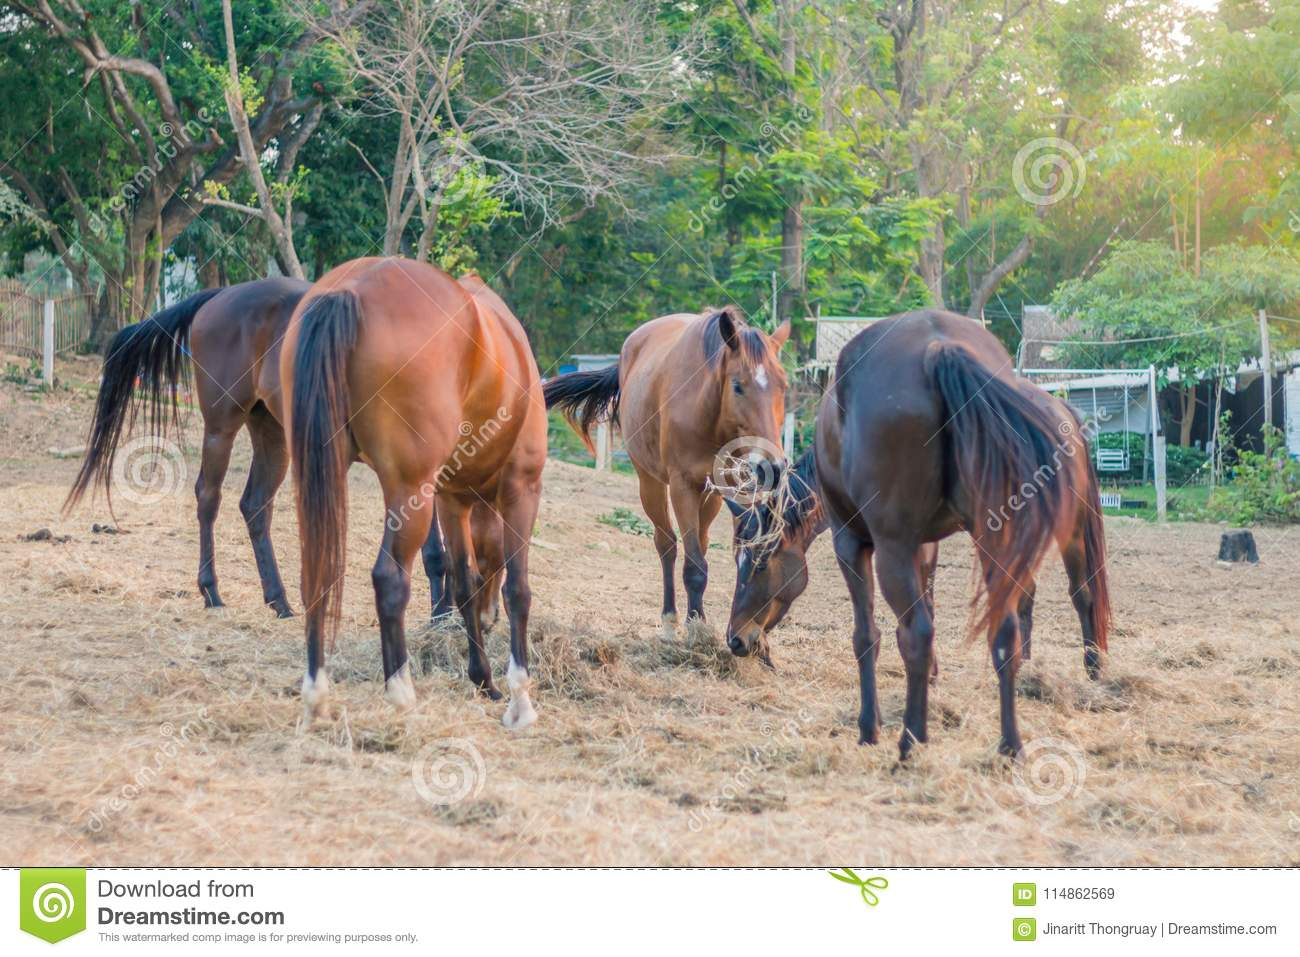 In the evening, the horses are resting after being trained in a